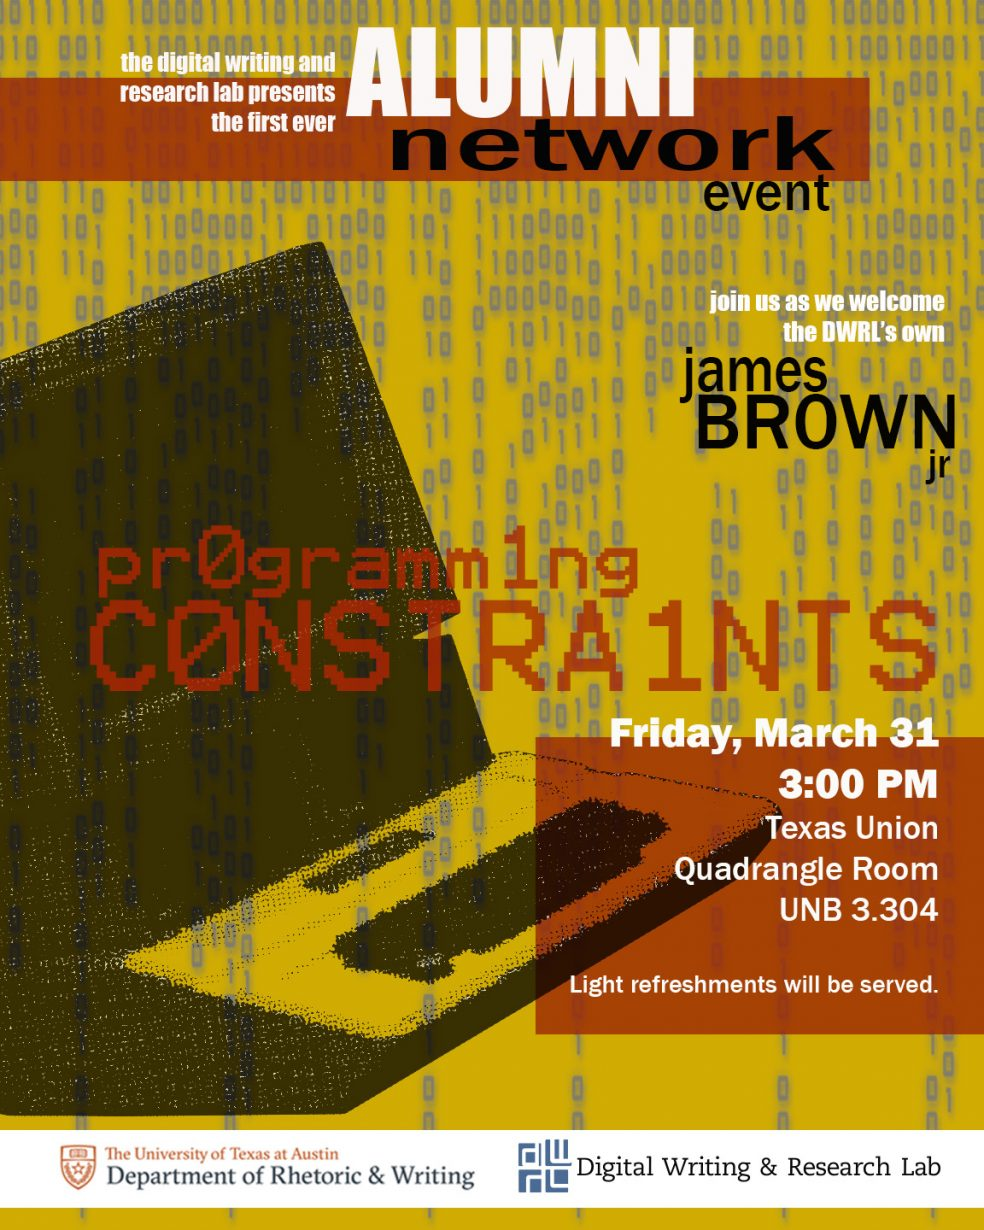 Promotional poster for DWRL's Alumni Network Event with James Brown Jr. Information provided in post.